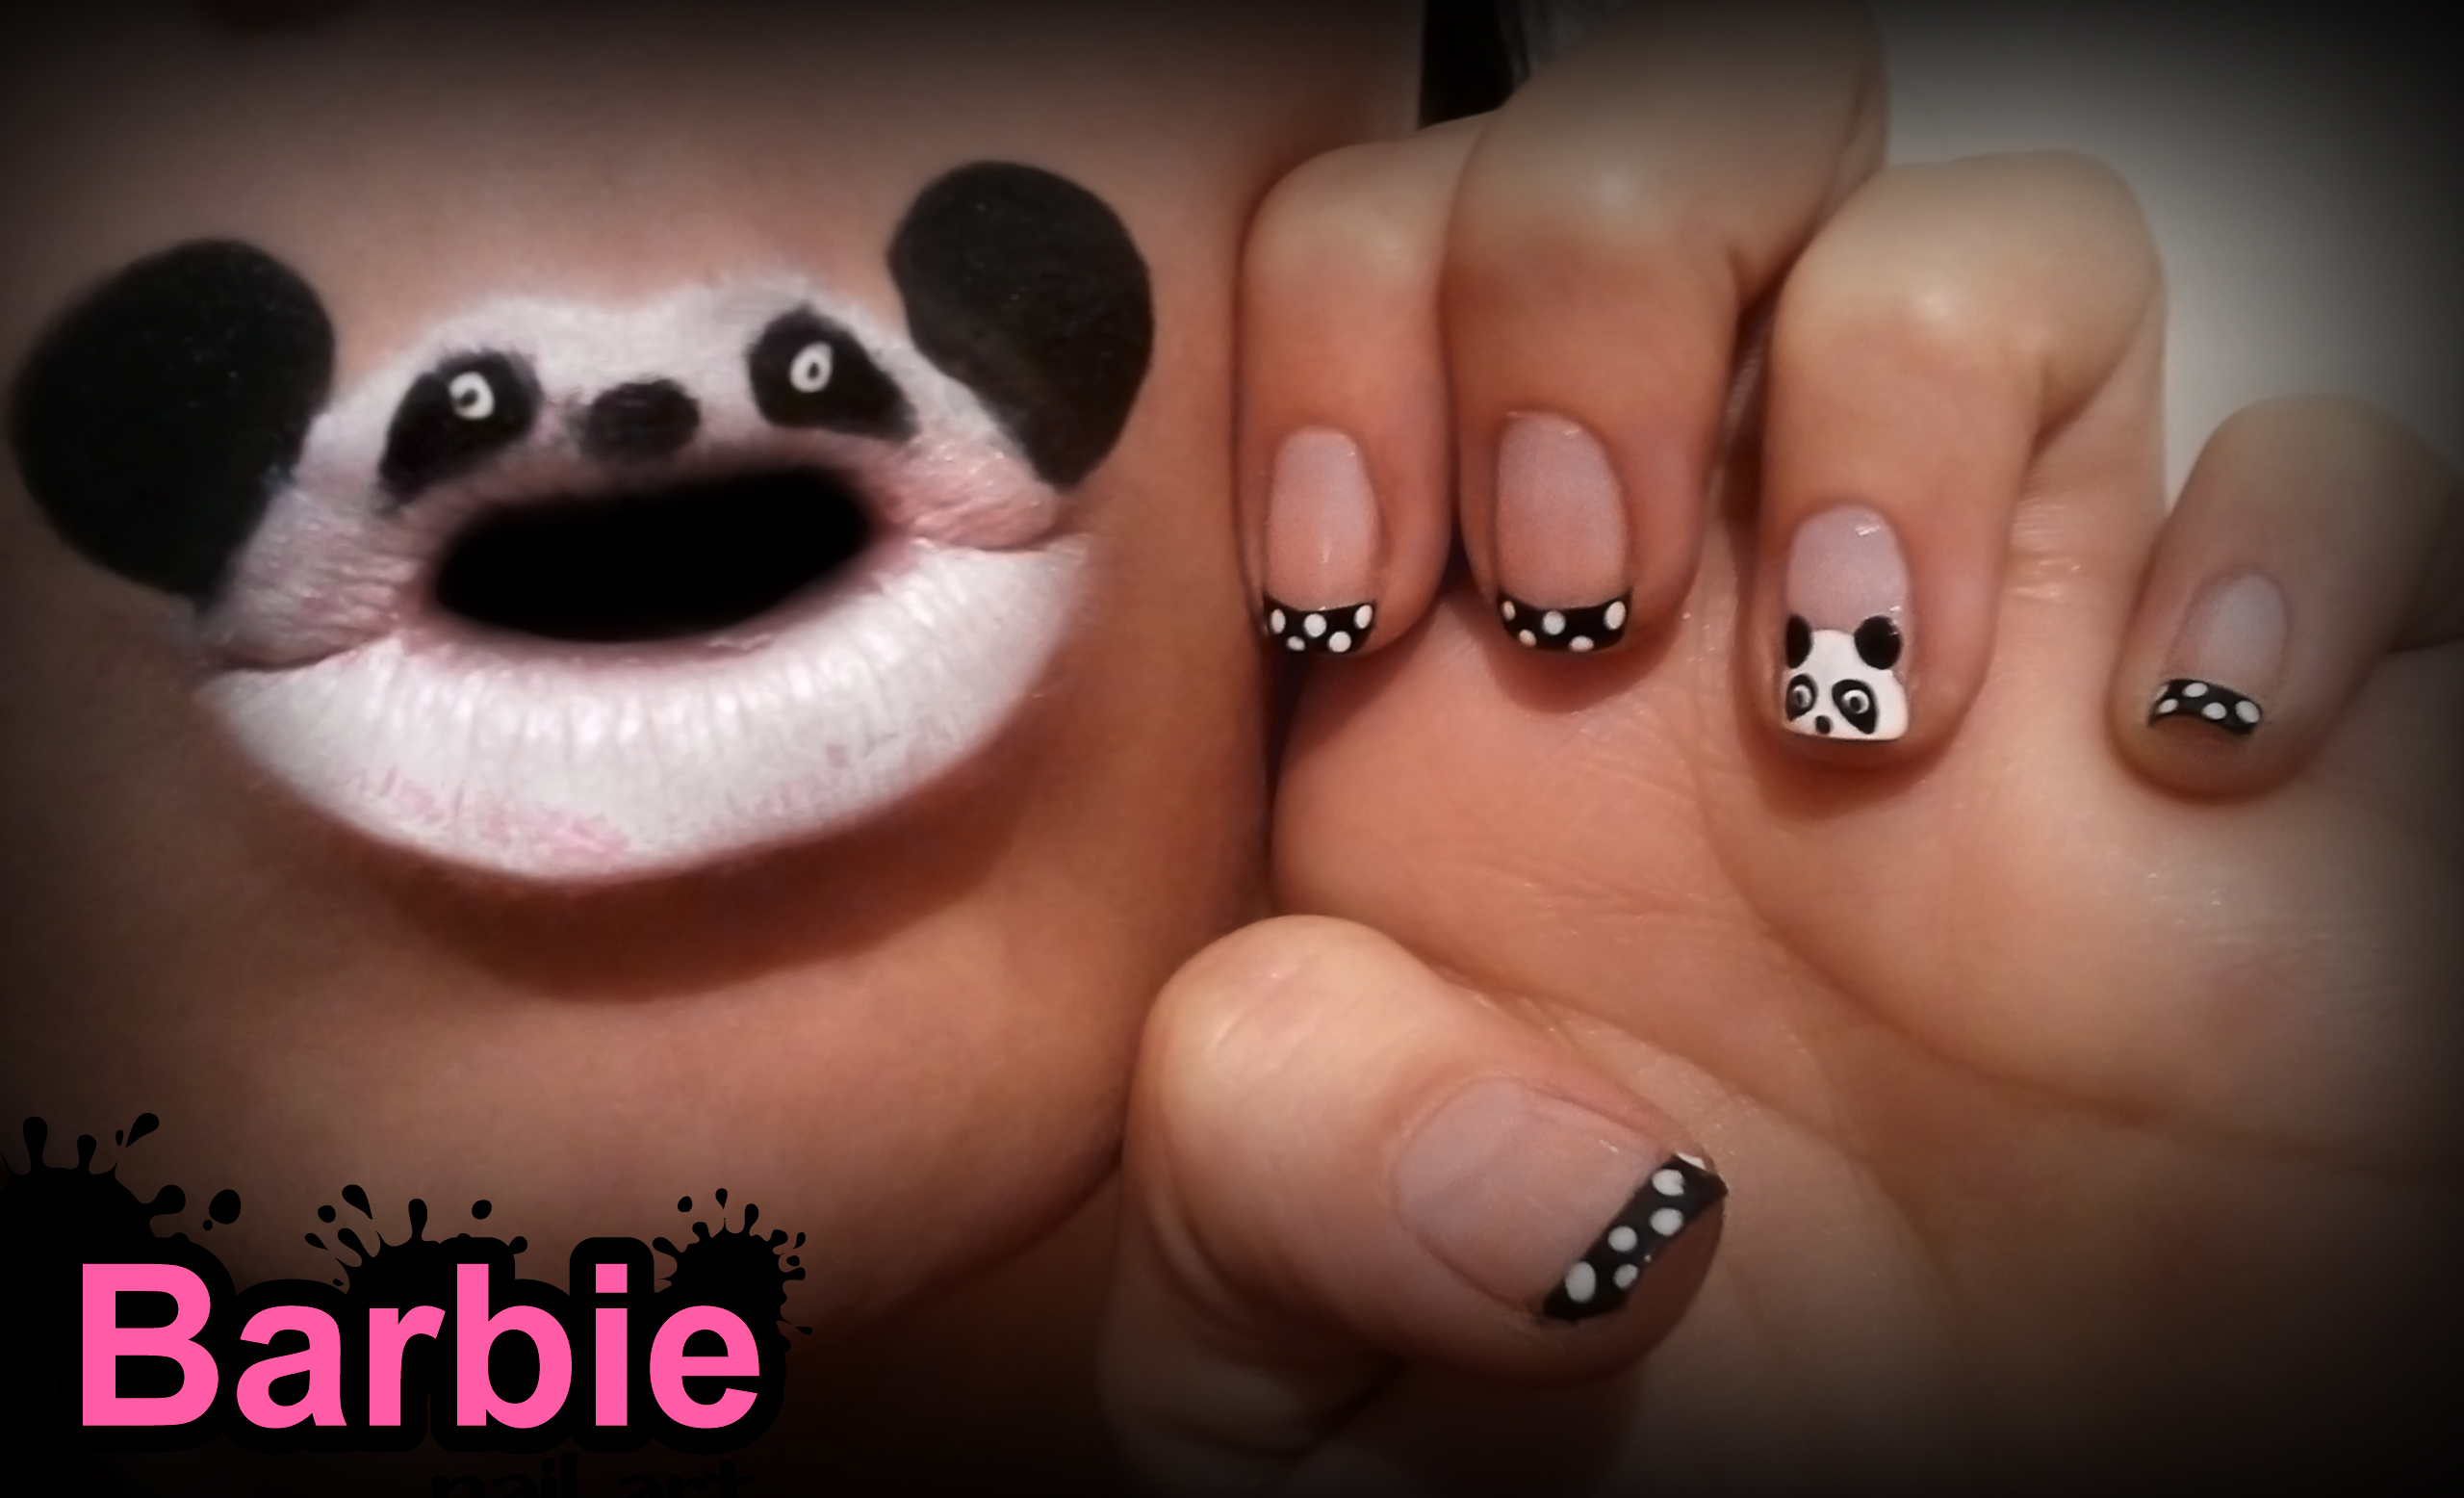 Panda nails by barbienailart on deviantart panda nails by barbienailart panda nails by barbienailart prinsesfo Image collections